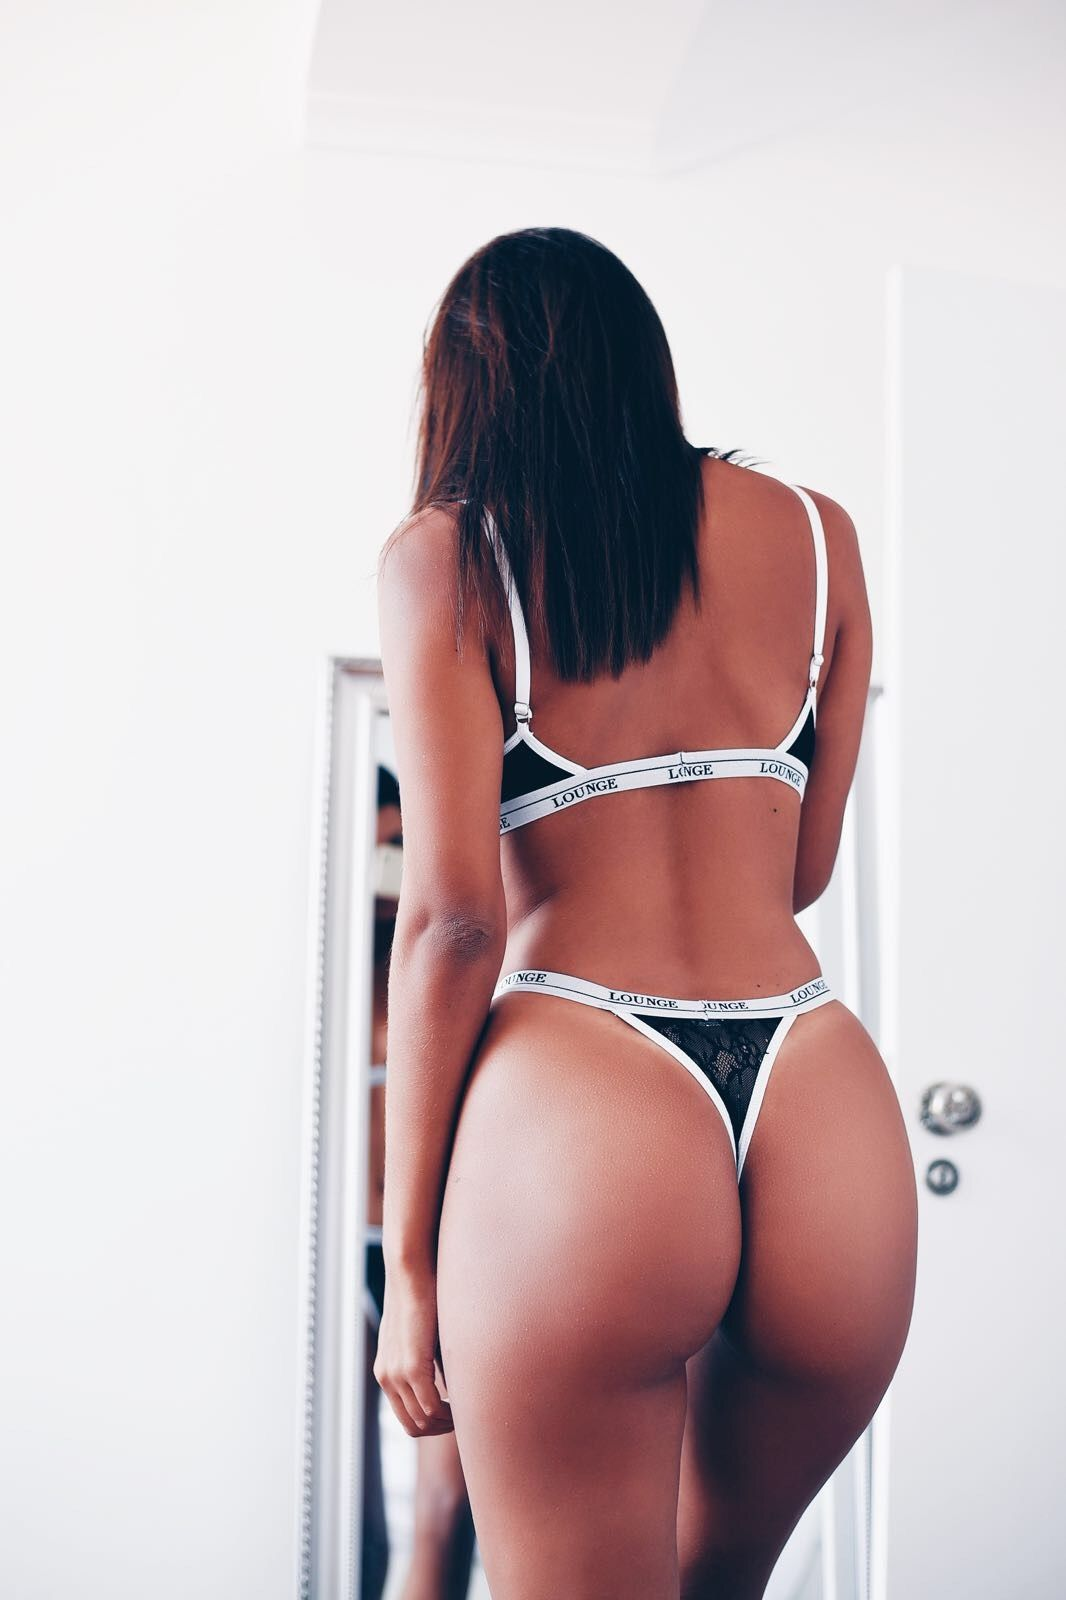 Shop for lingerie for my wife